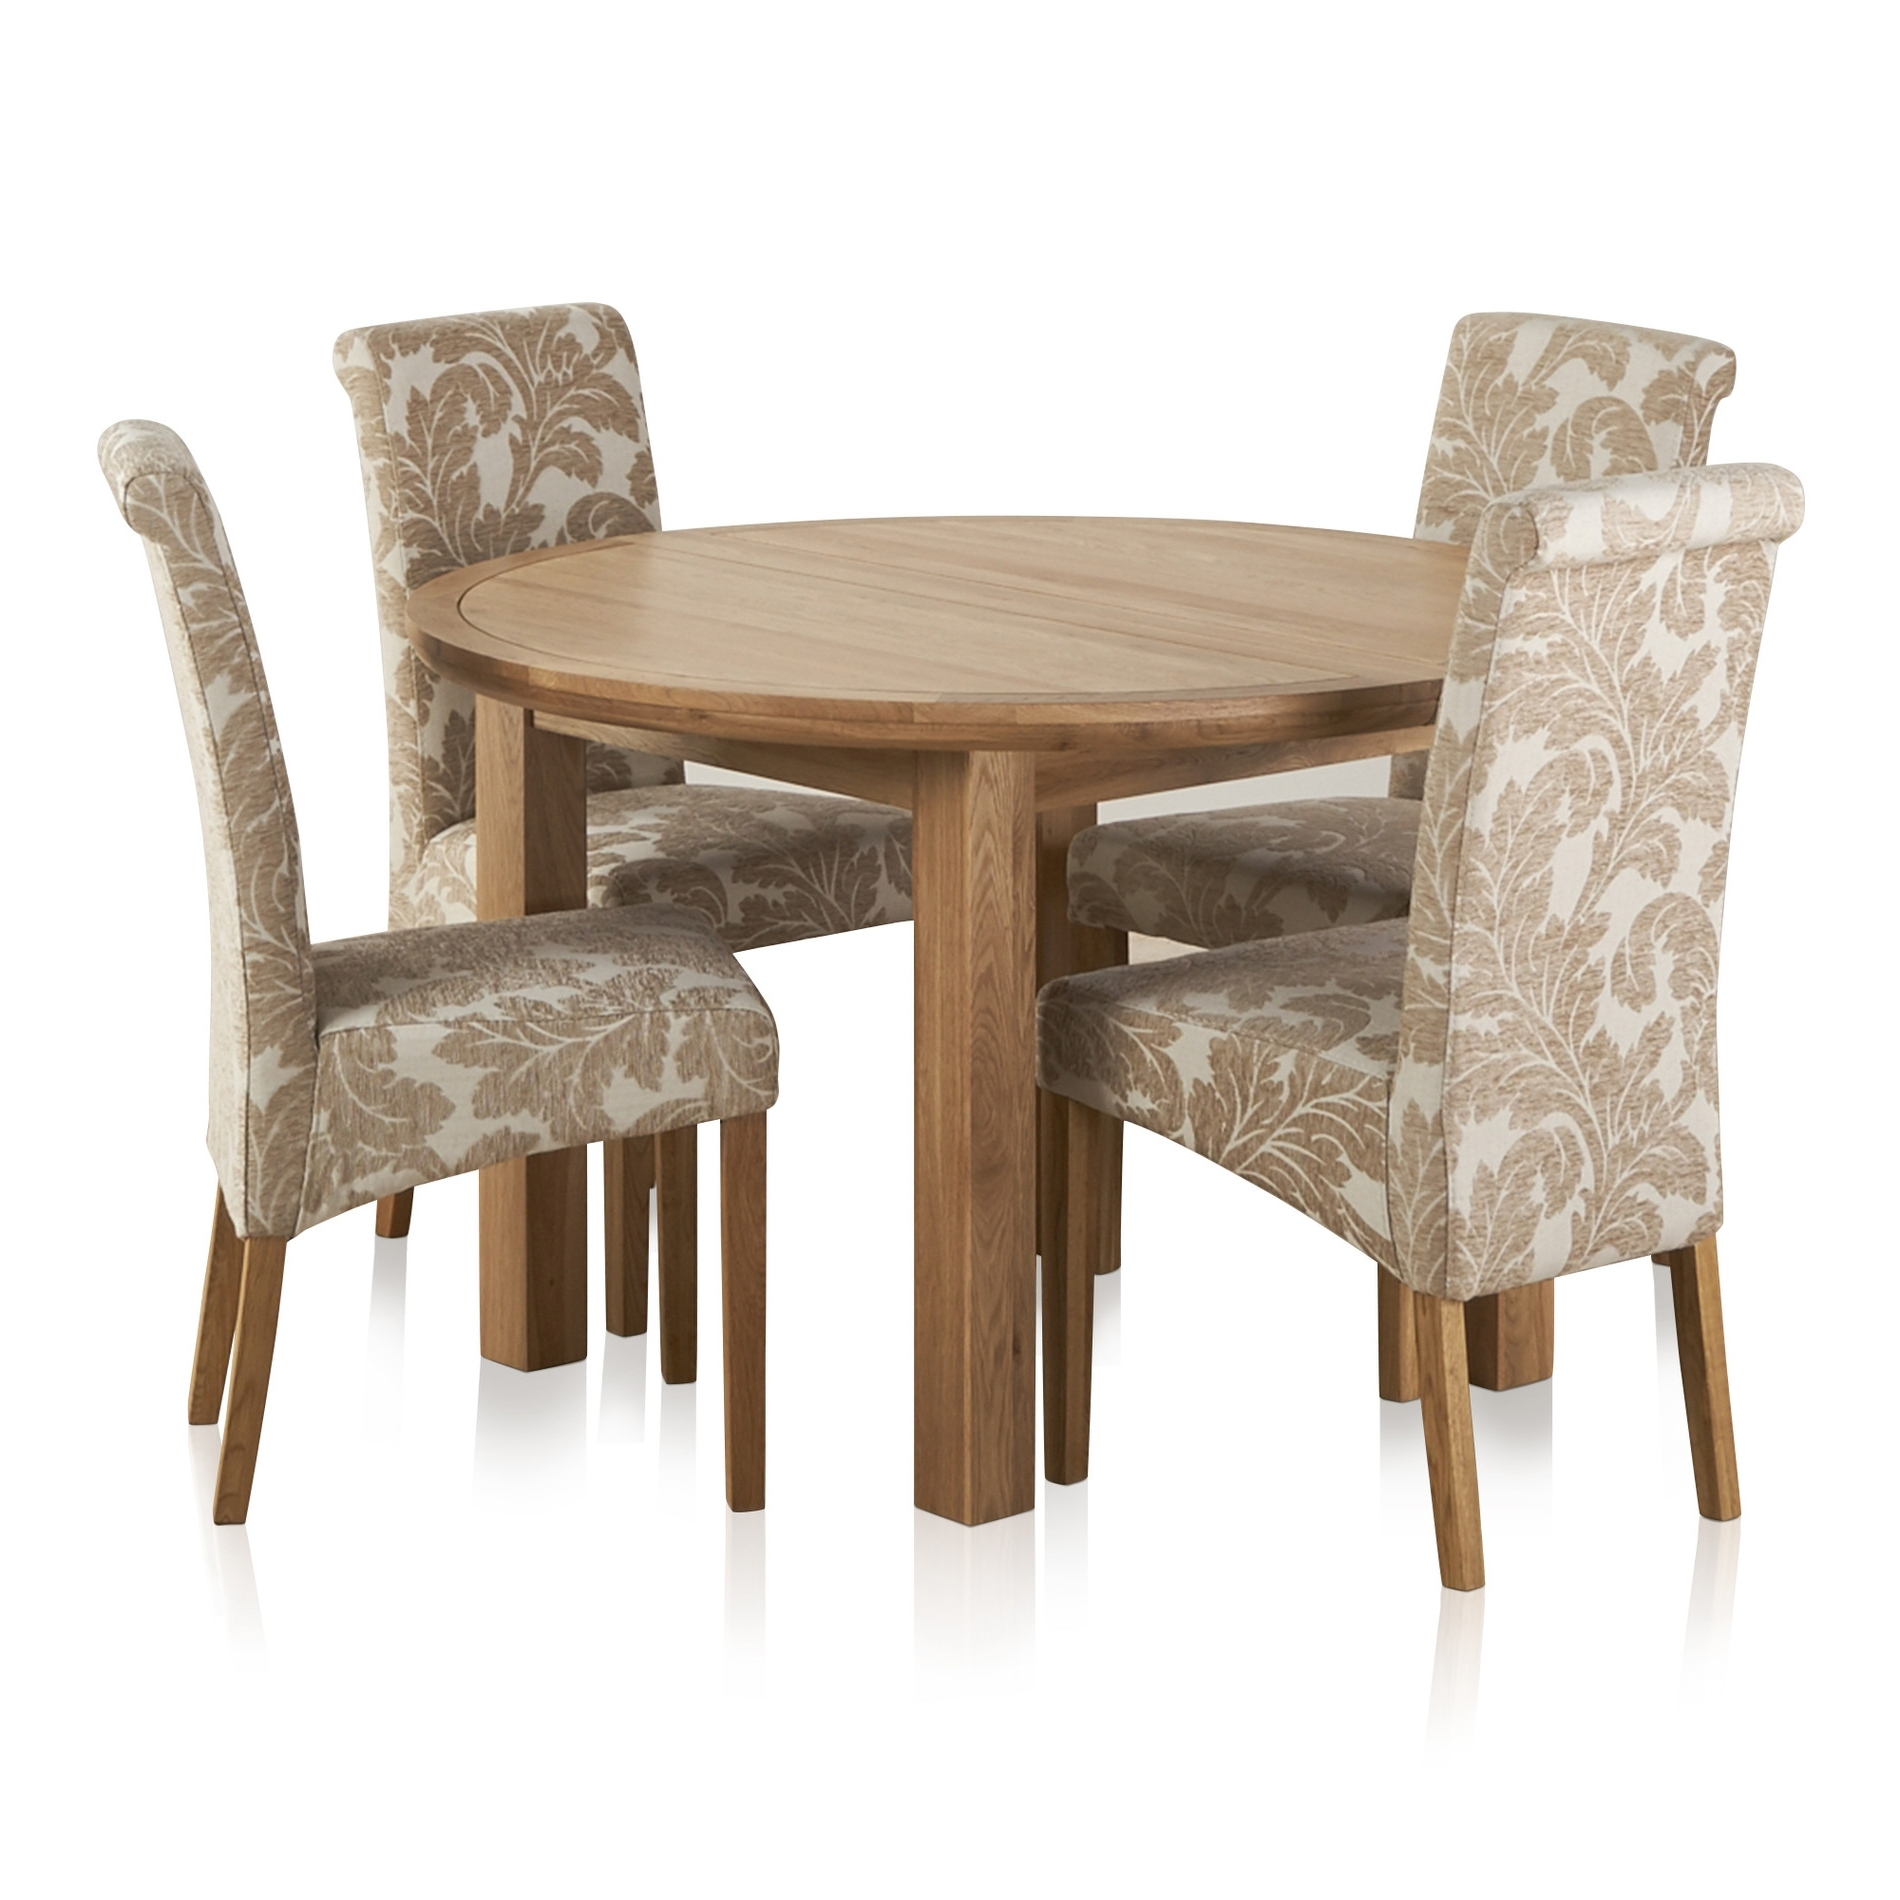 Knightsbridge Oak Dining Set - Round Extending Table + 4 Chairs with regard to Trendy Round Oak Dining Tables And Chairs